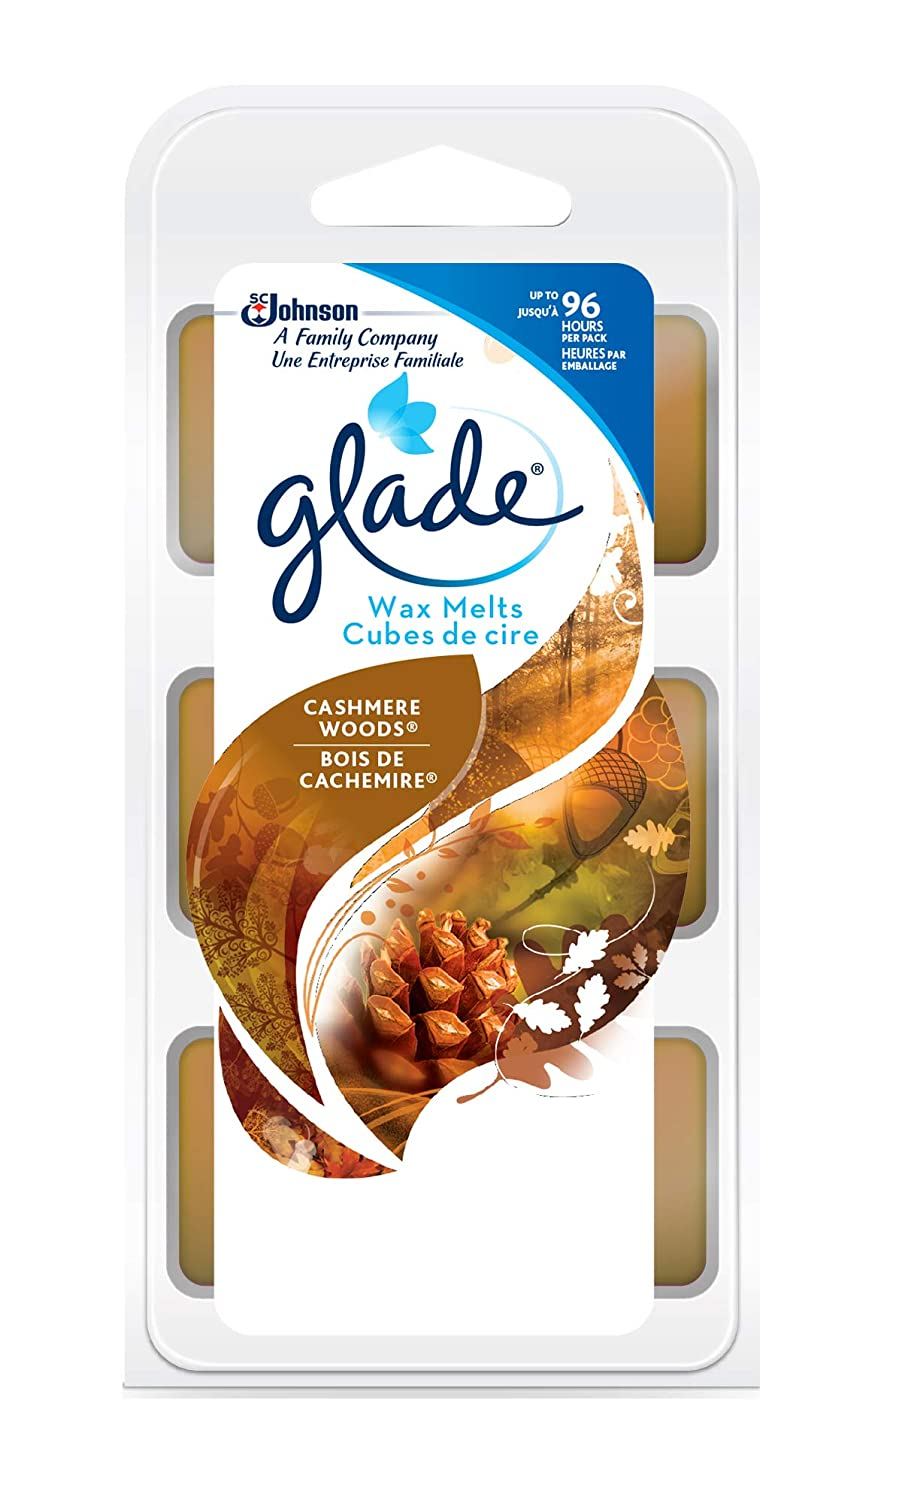 Glade Glade wax melts - cashmere woods 6 count SC Johnson 660609